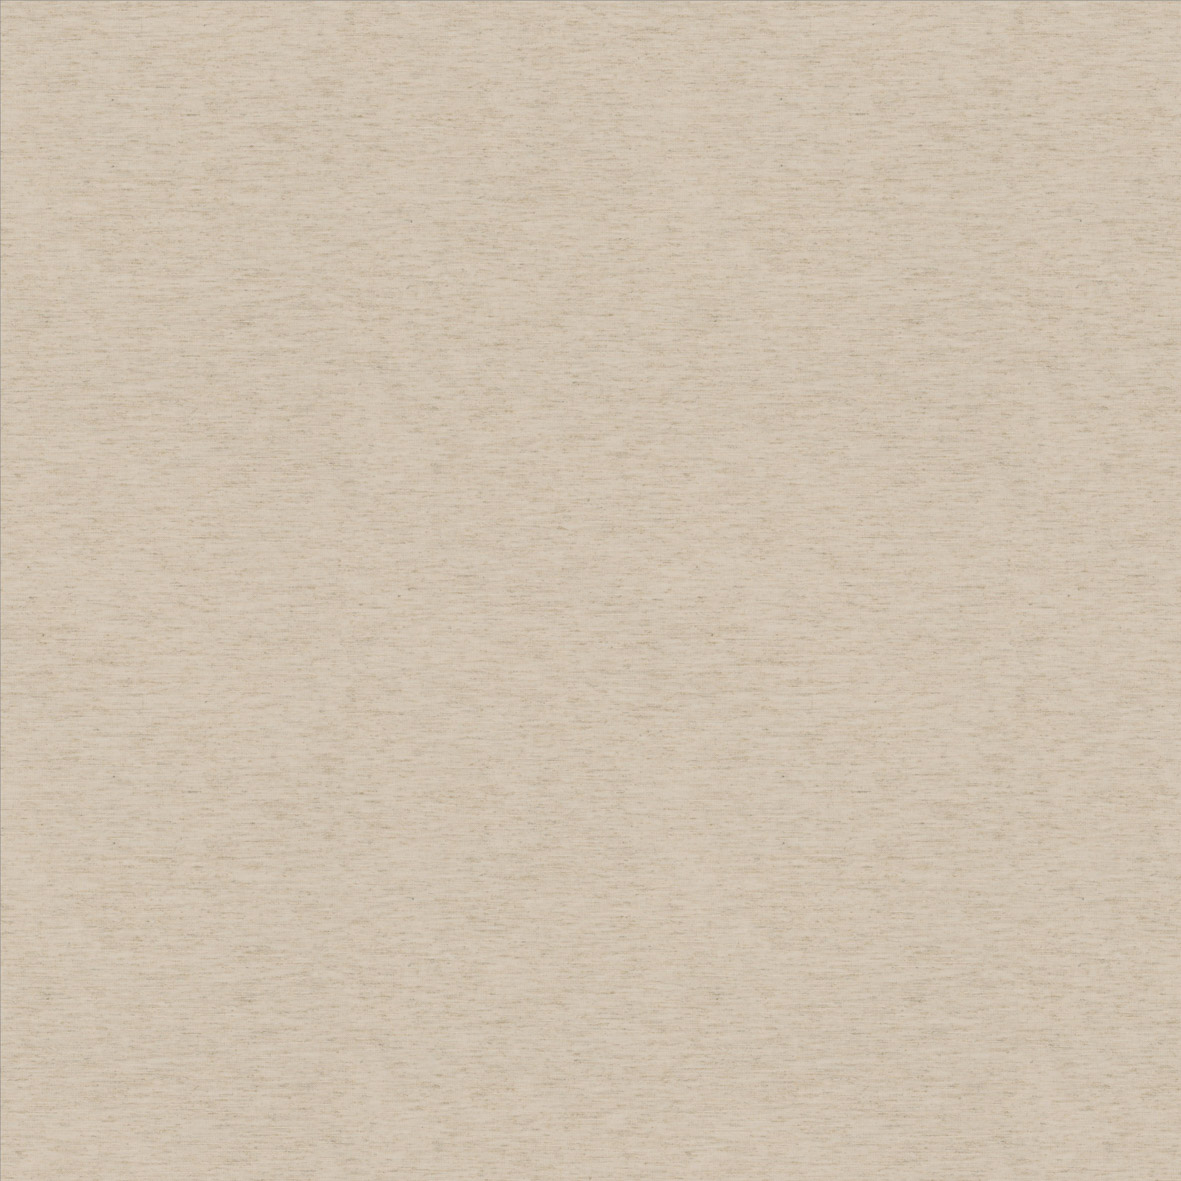 Roller_Swatch_Linenweave_Flax_RE1571